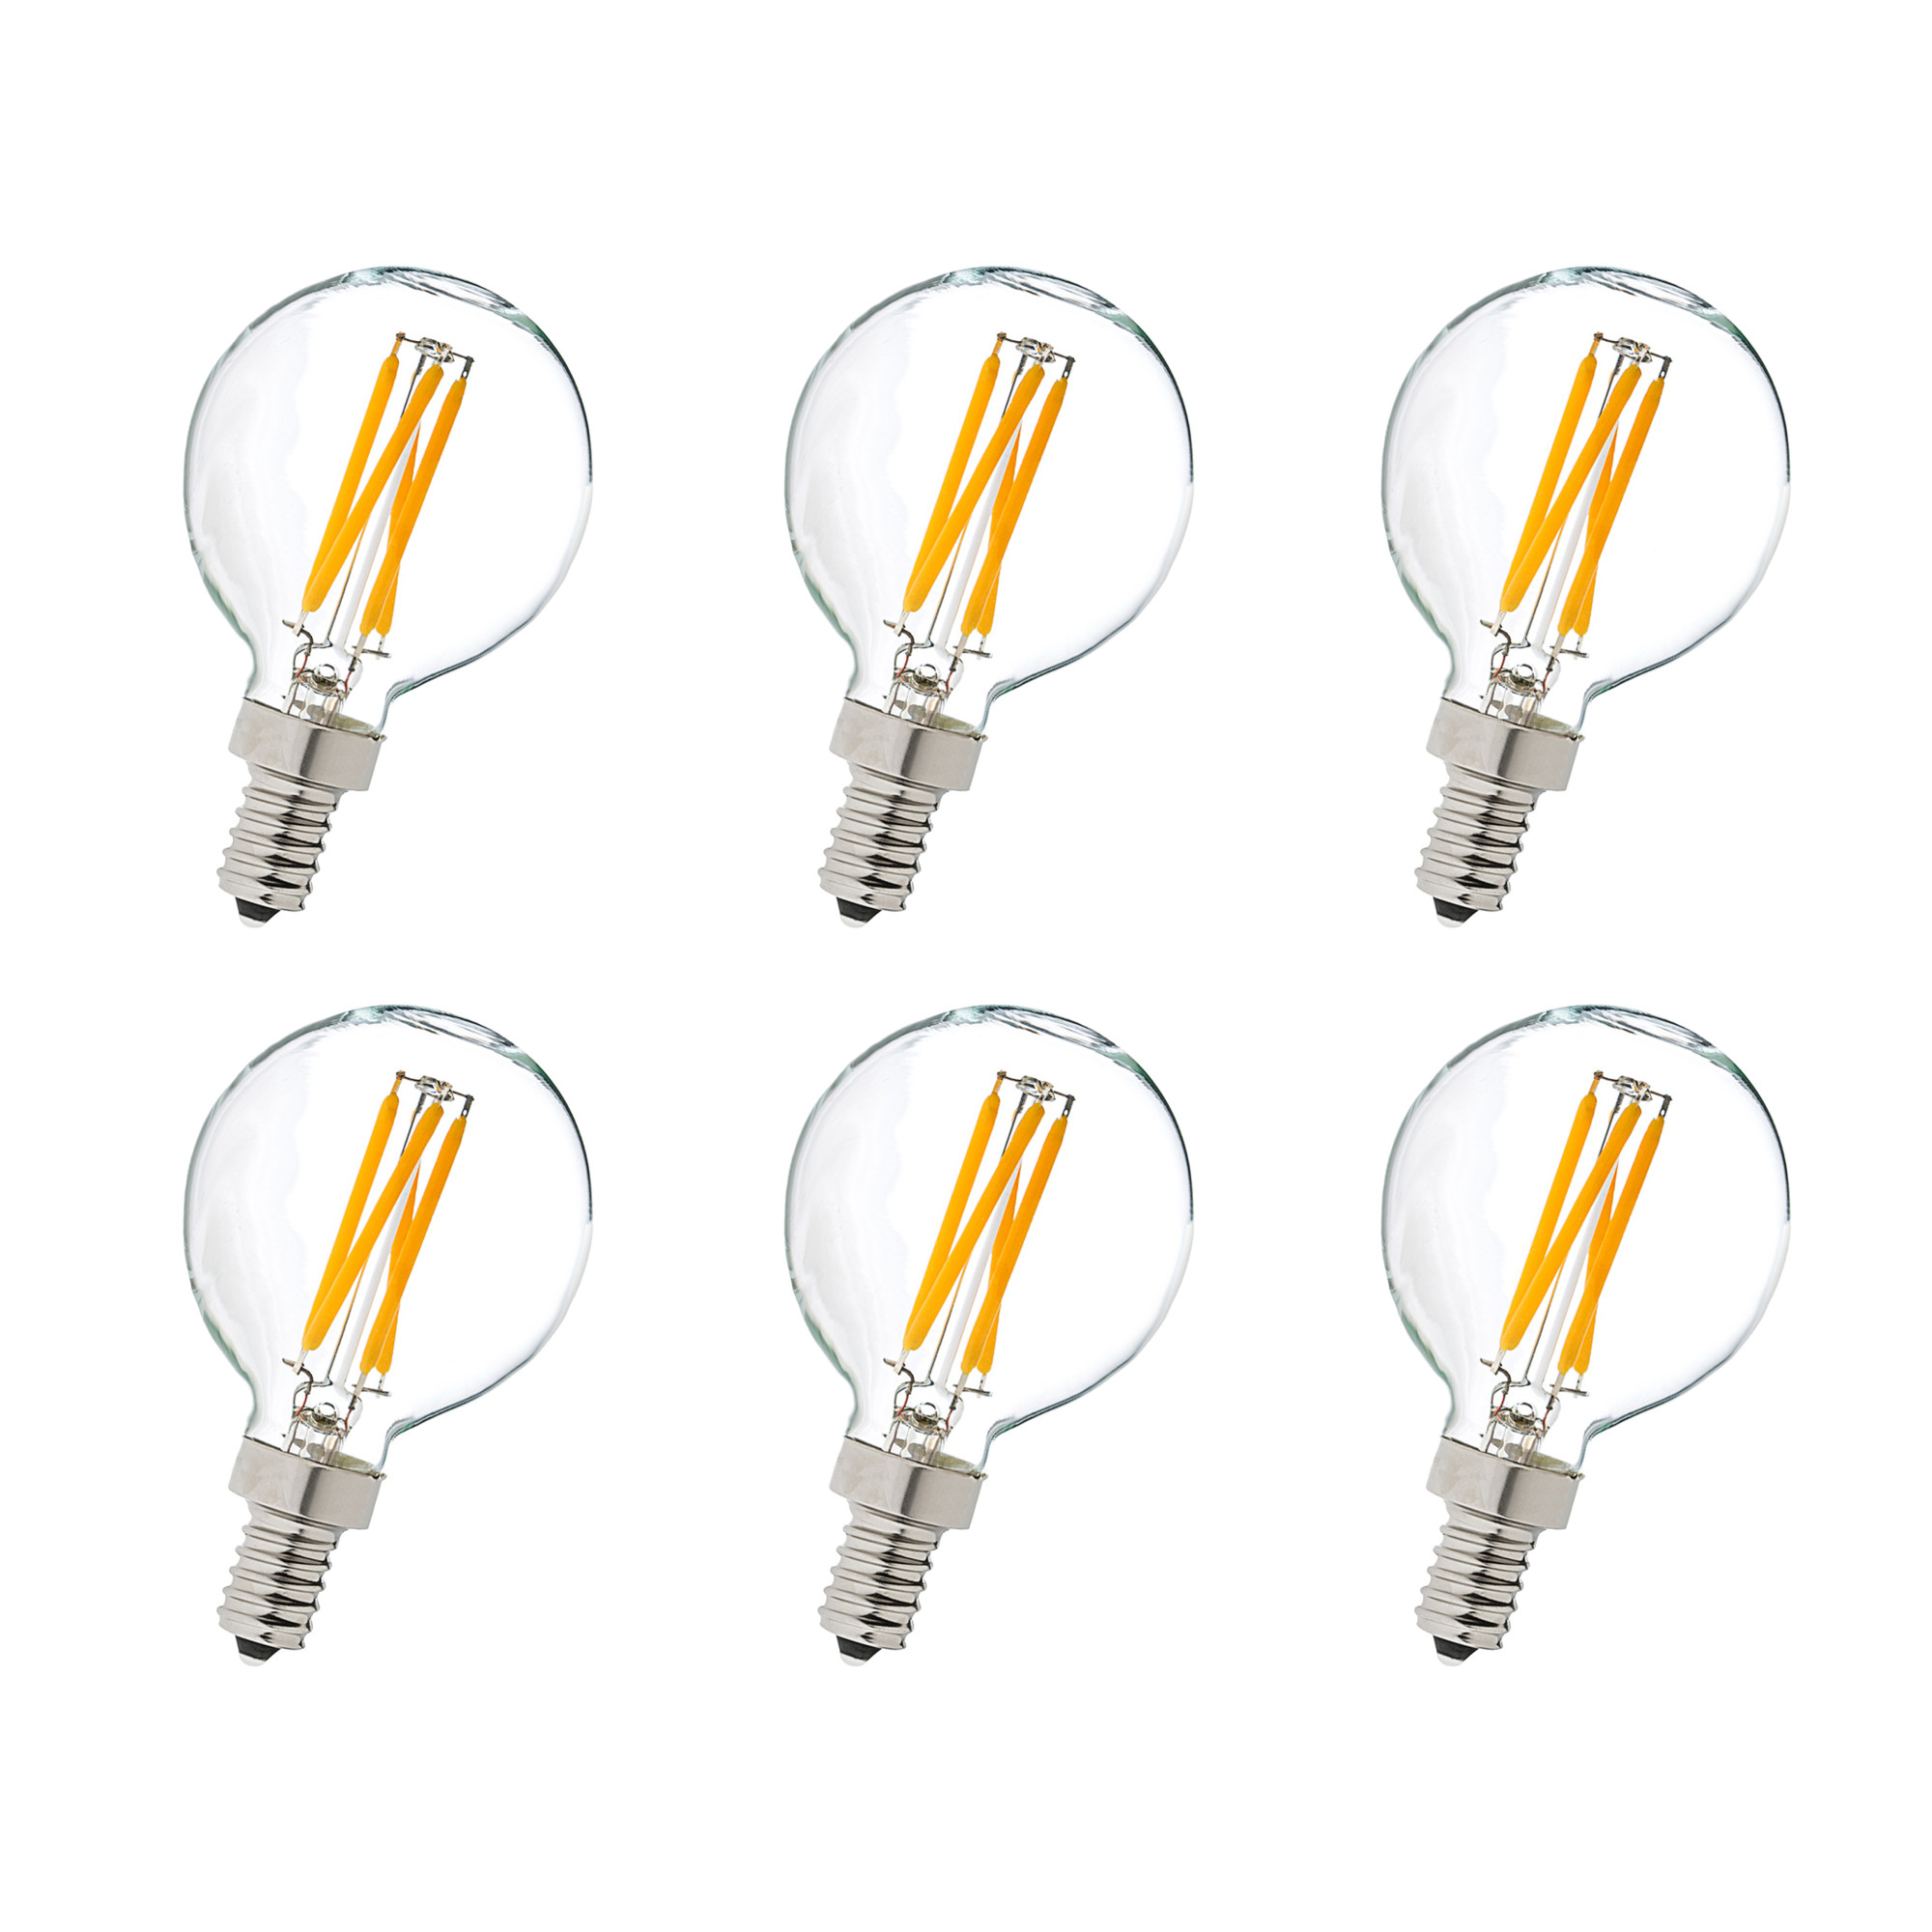 Elegant Lighting G14LED101 4 Watt Dimmable G14 Shaped Candelabra (E12) LED Bulb - Pack of 6